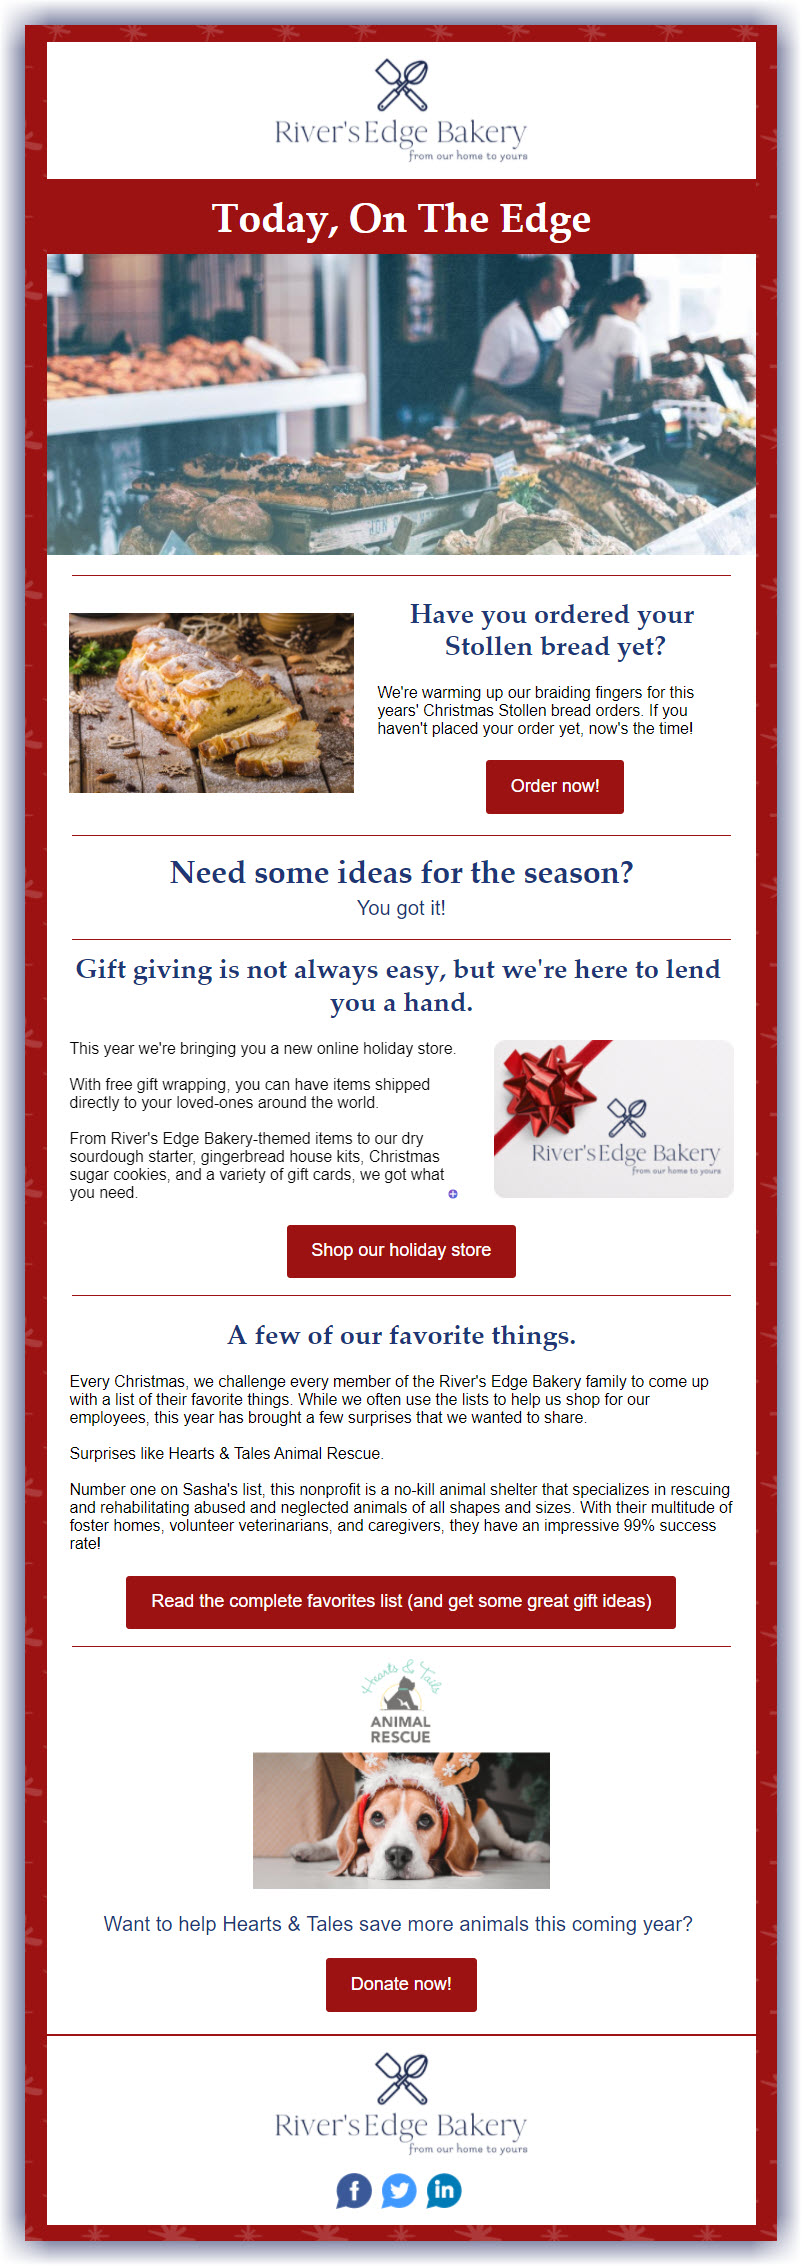 Example of simple, branded Christmas email decorations using a brand complimentary red and holiday imagery